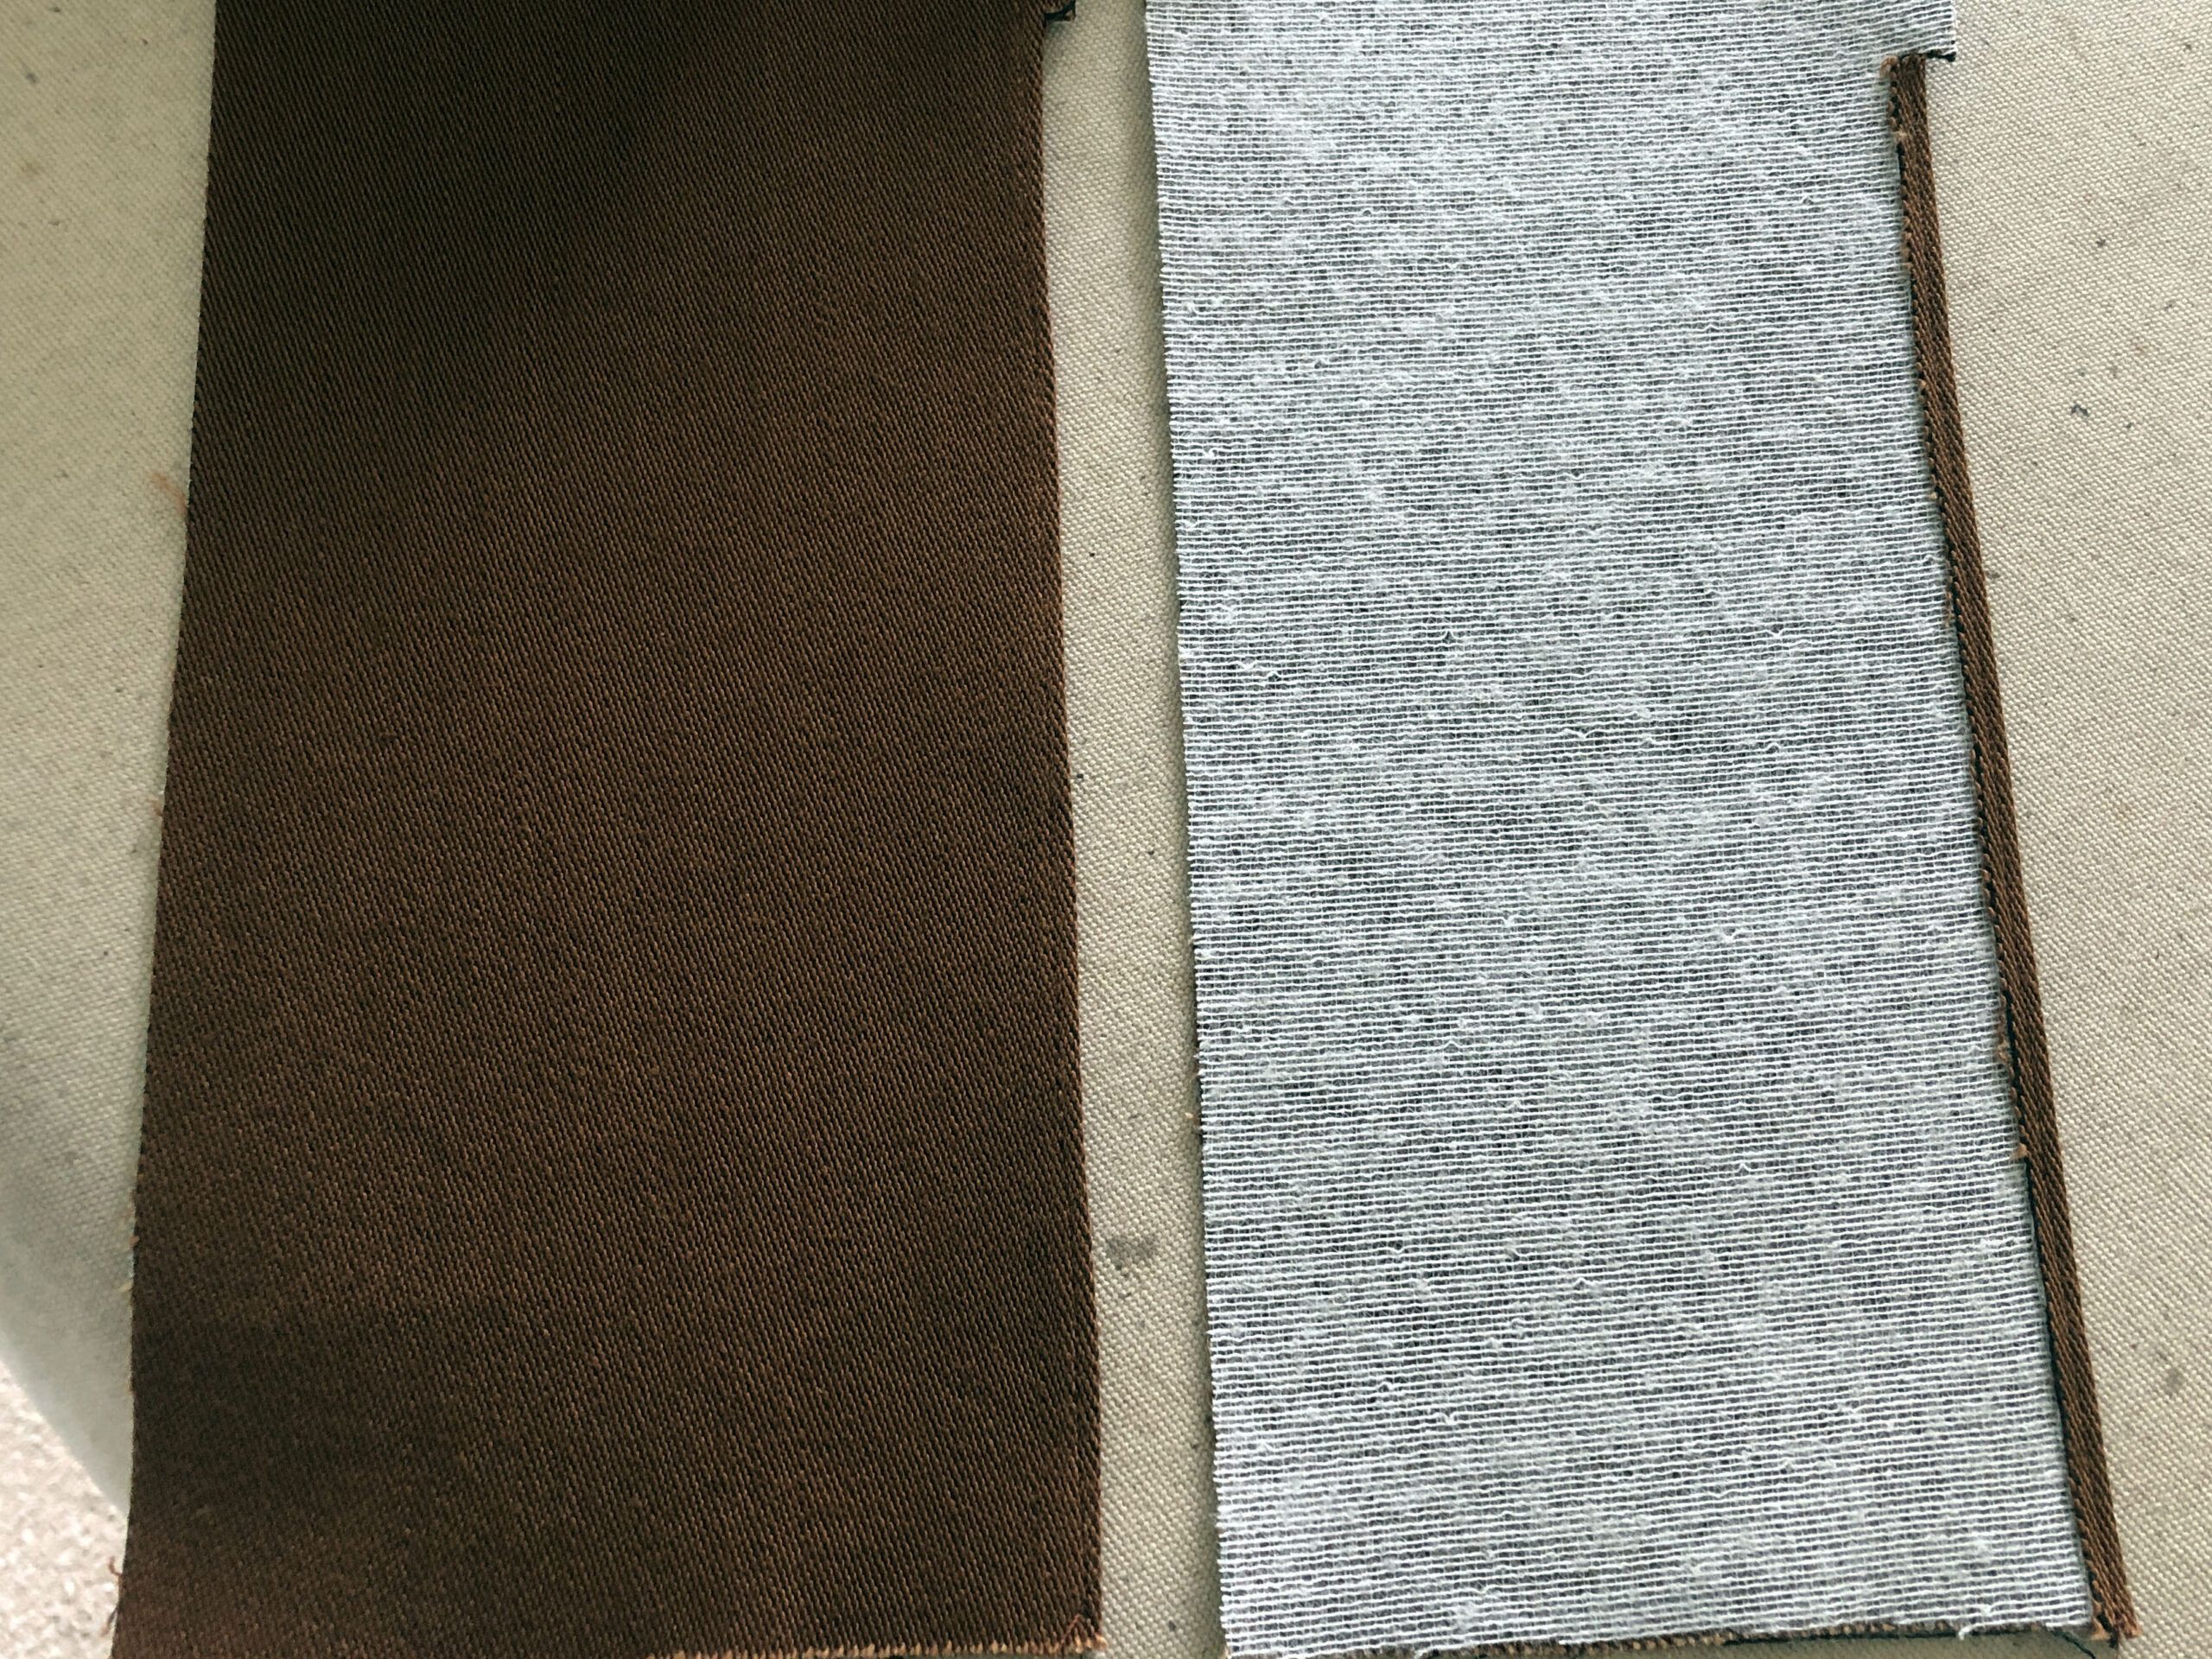 Fusible weft interfacing added to facing